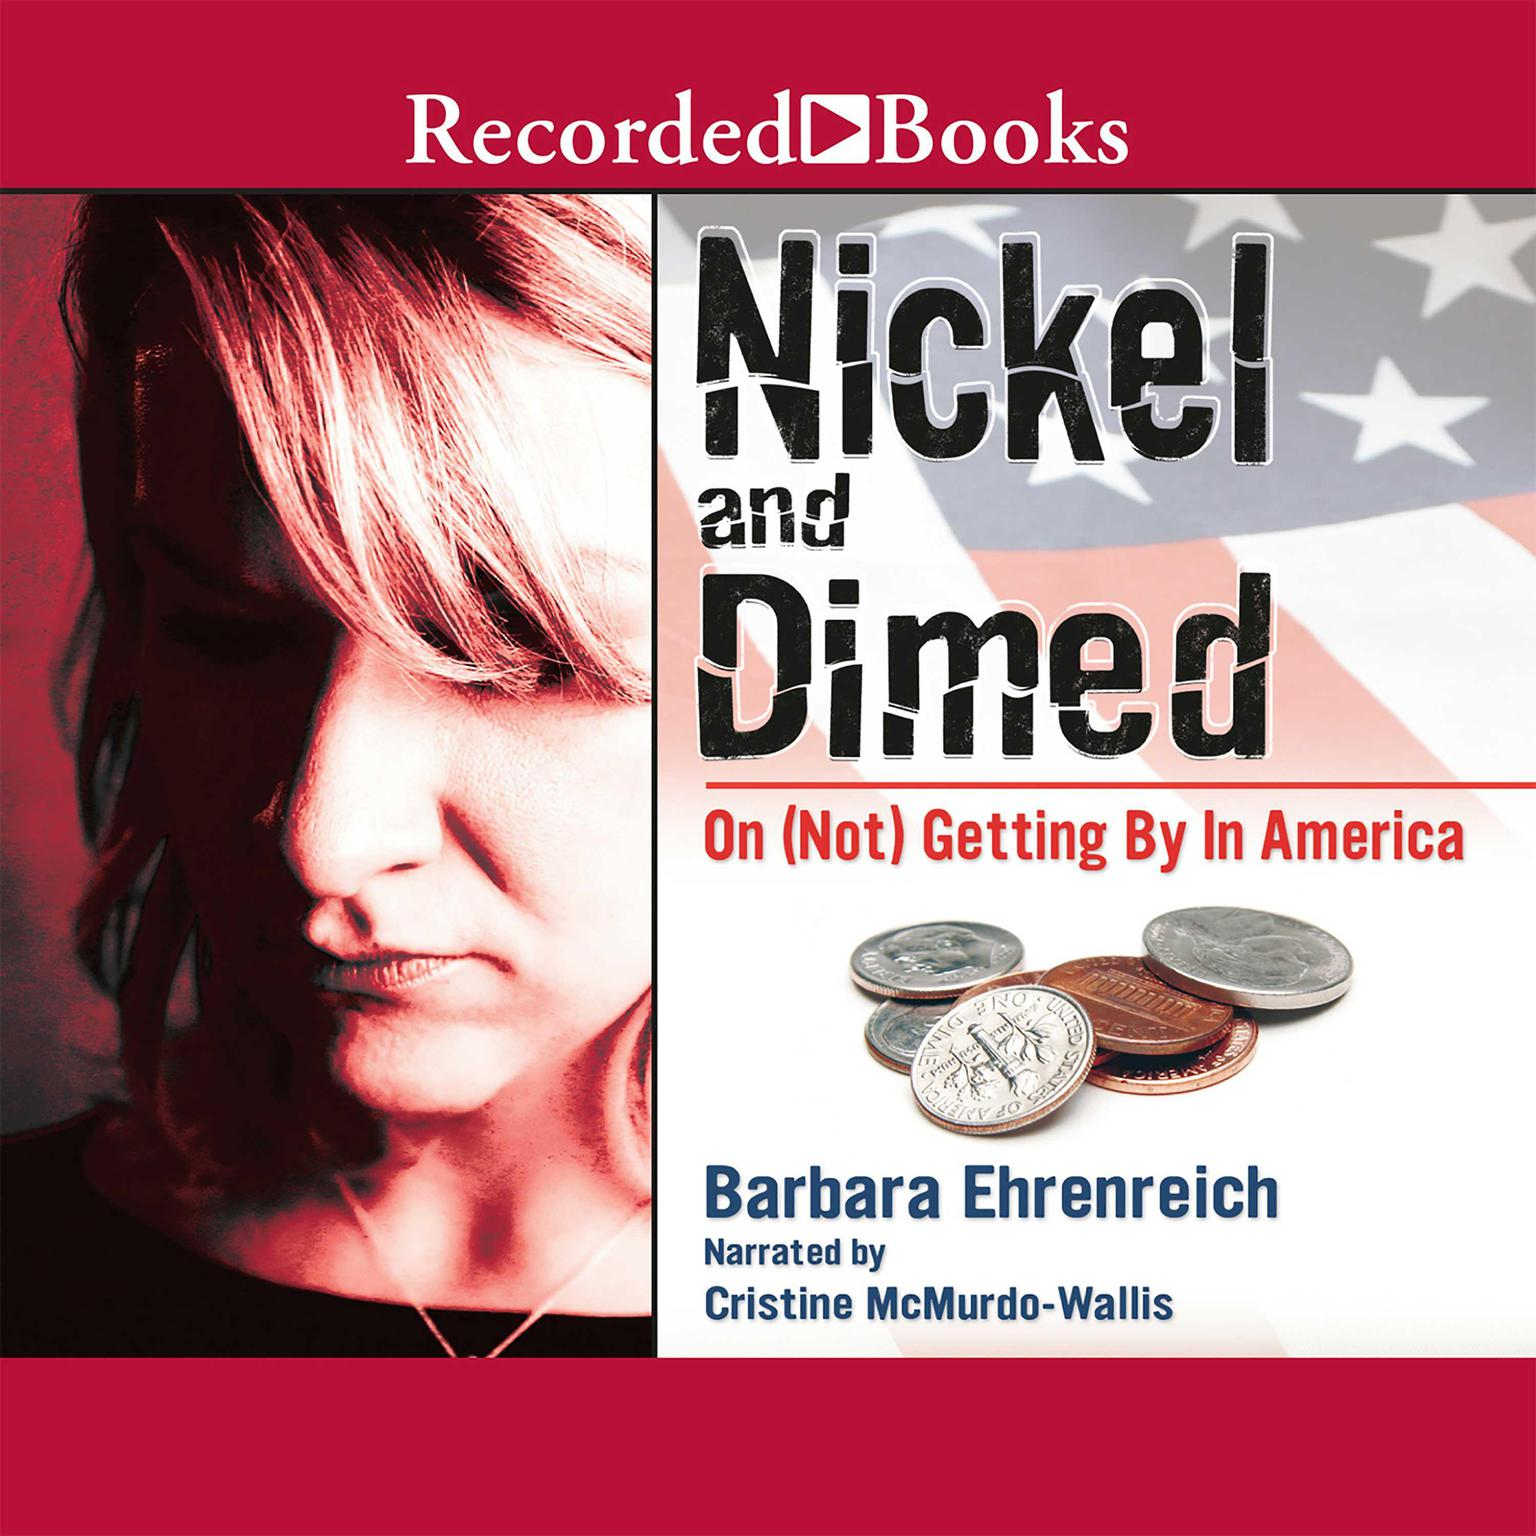 nickel and dimed on not getting by in america essay Find helpful customer reviews and review ratings for nickel and dimed: on (not) getting by in america at amazoncom read honest and unbiased product reviews from our.